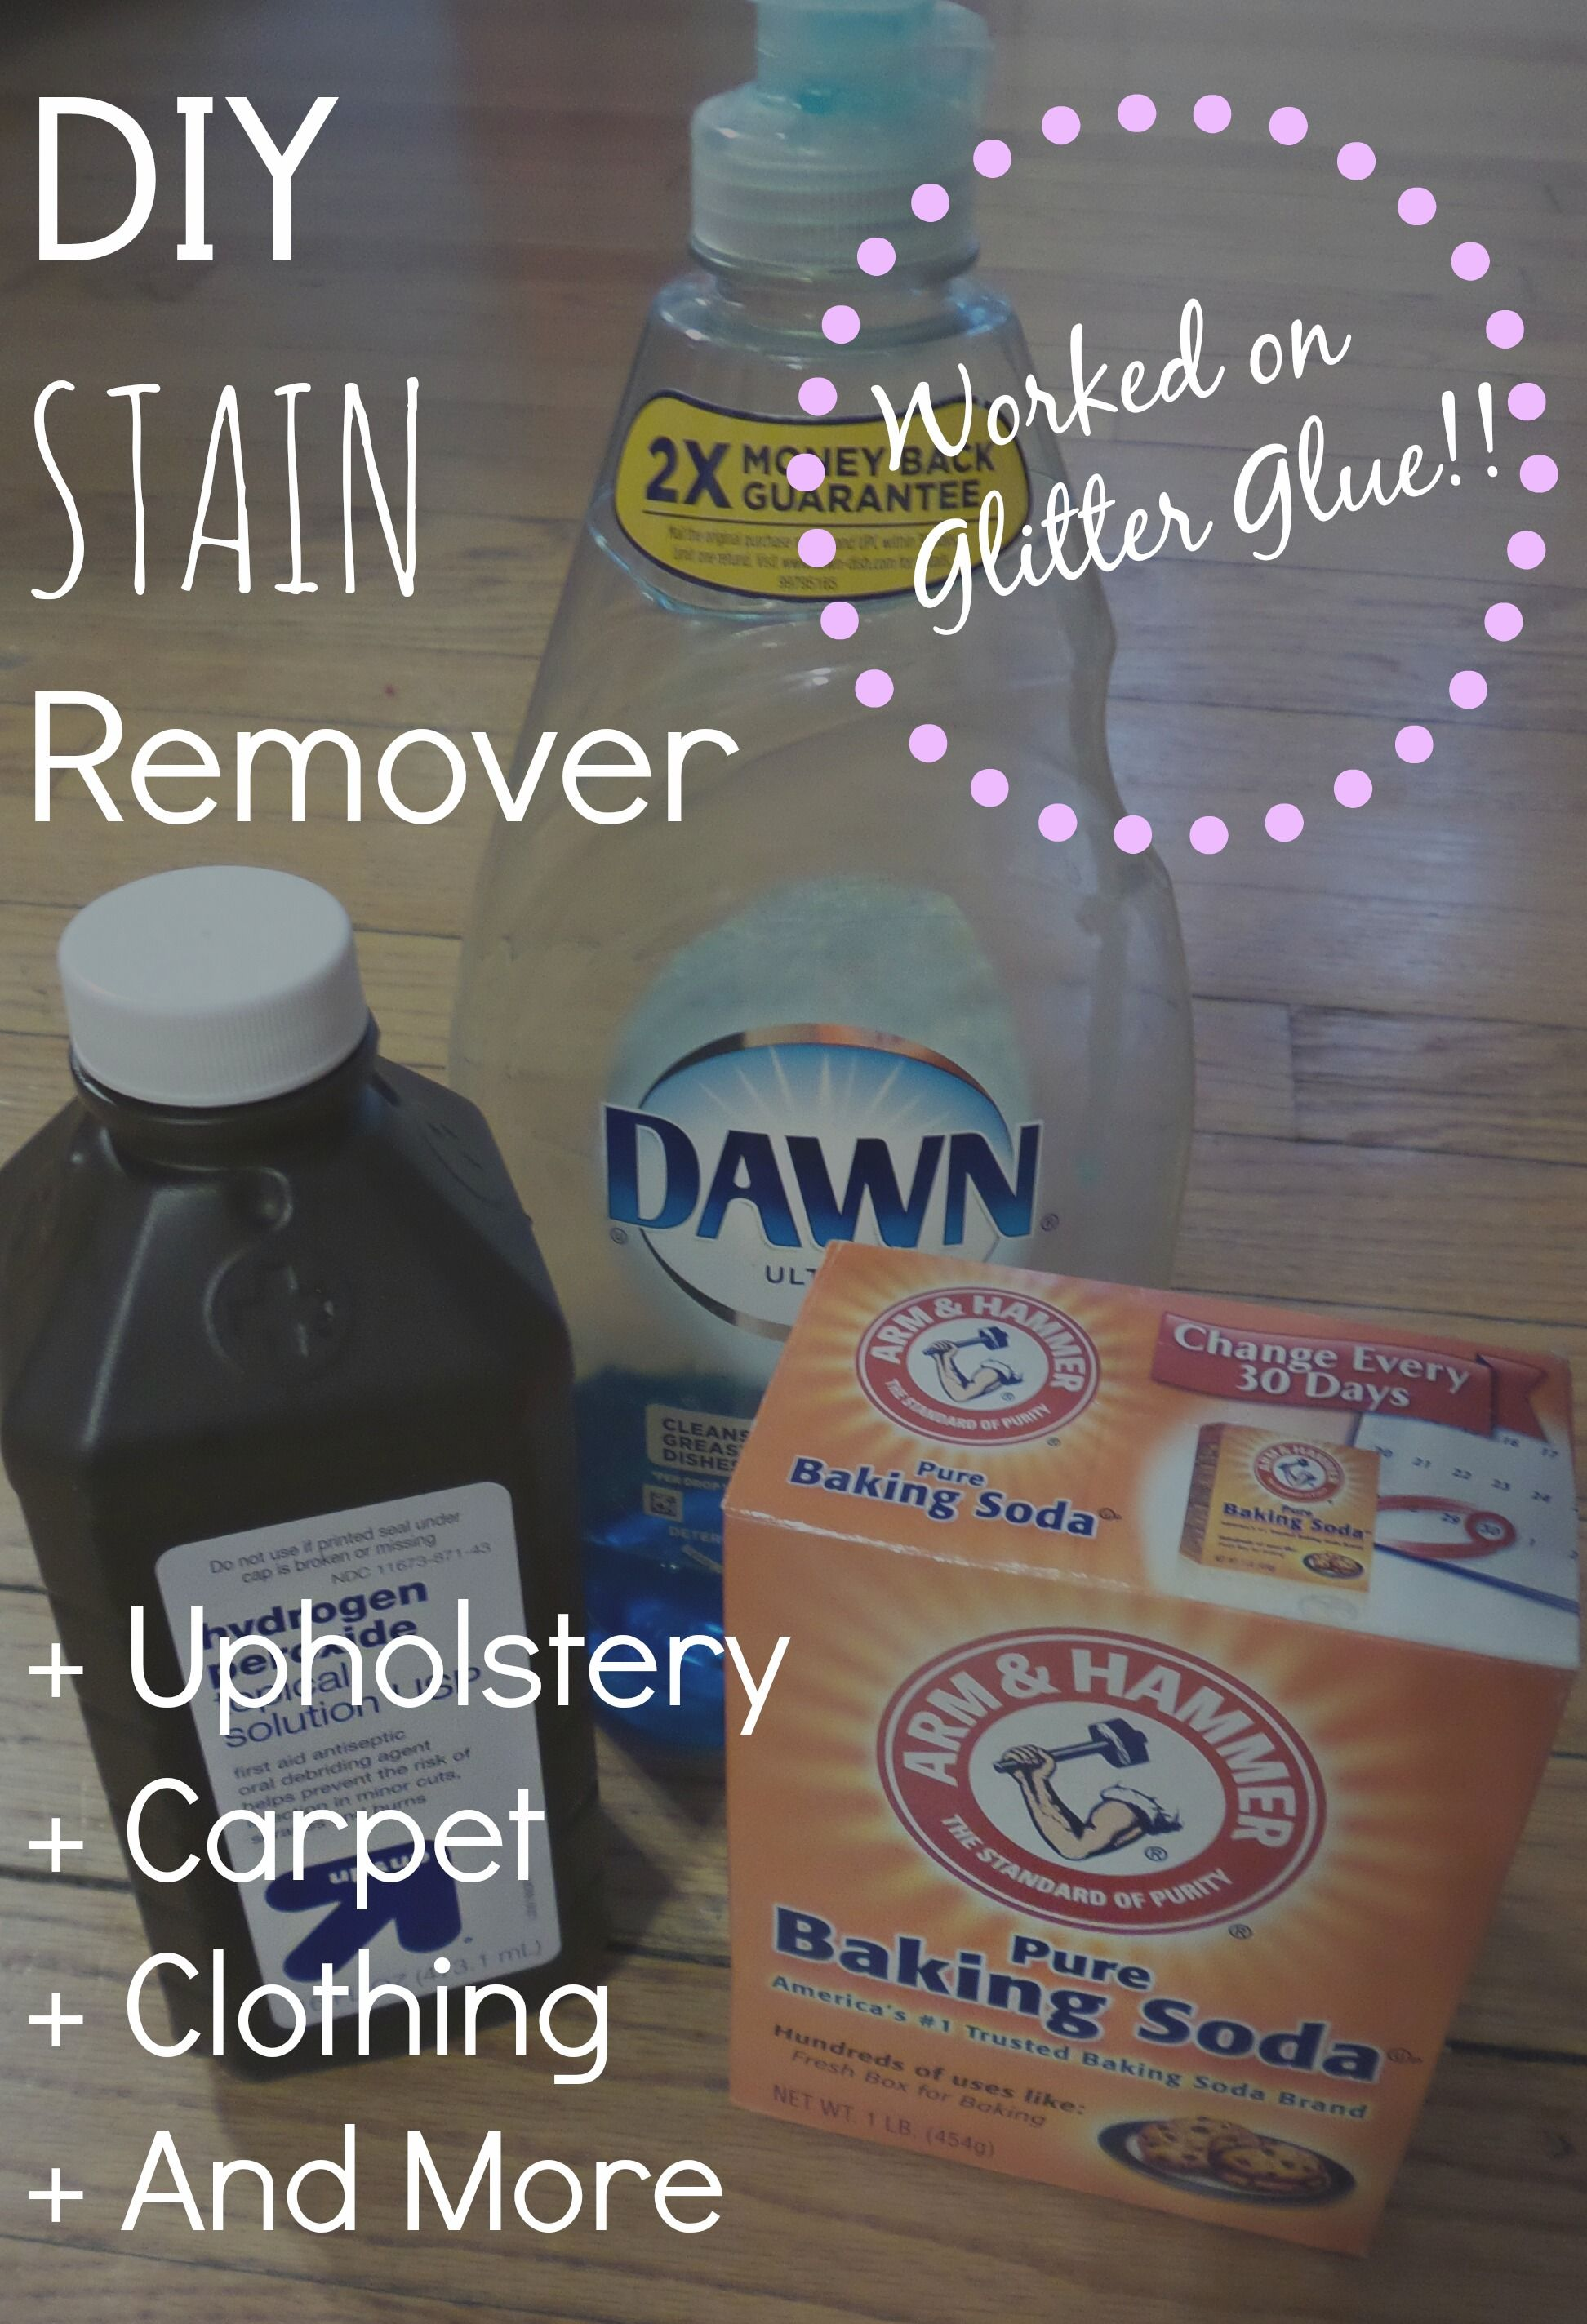 Diy upholstery cleanerstain remover cleaning car